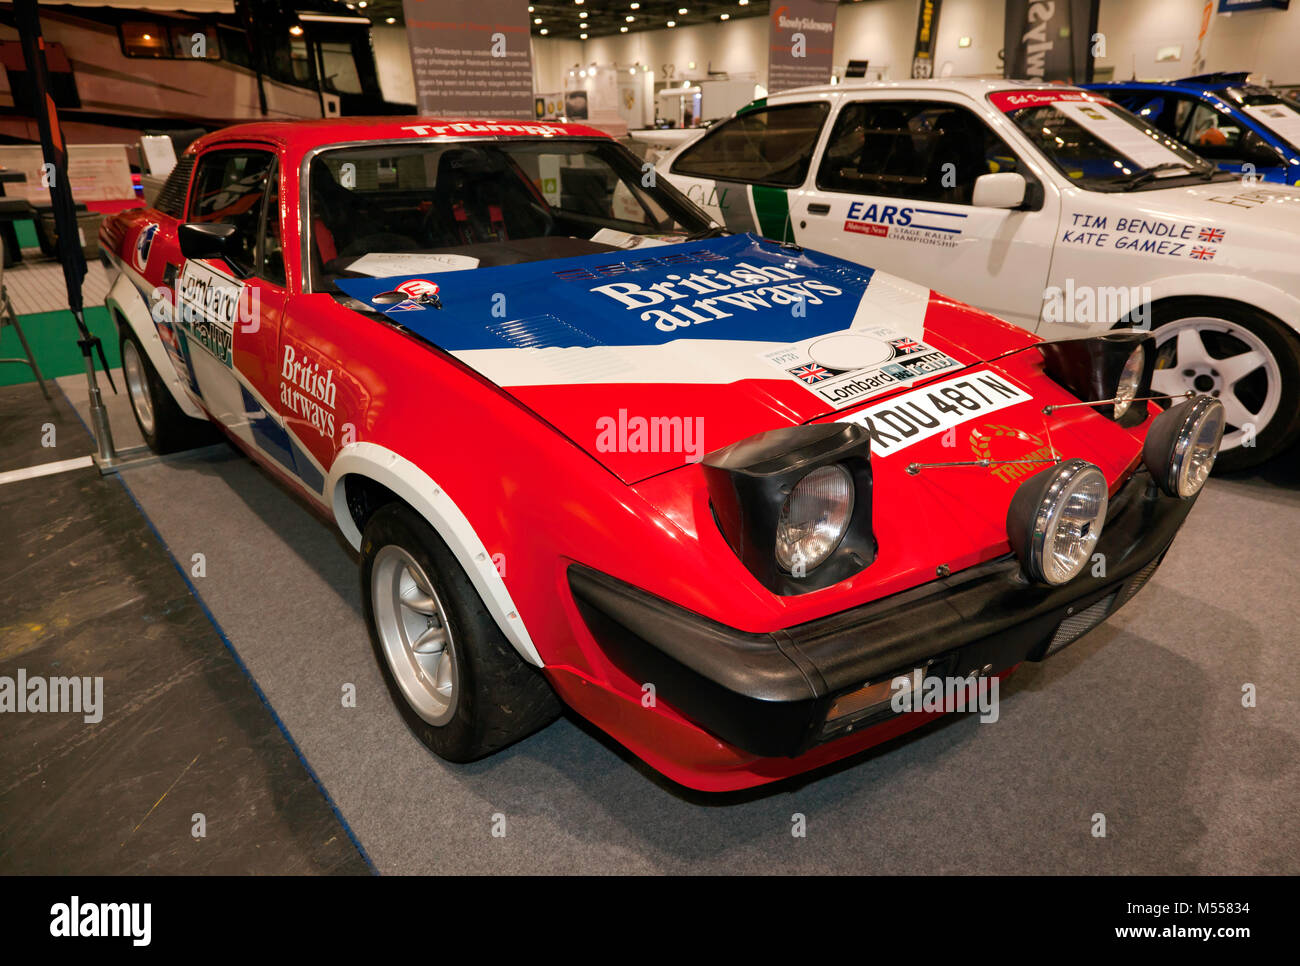 Tr7 Stock Photos & Tr7 Stock Images - Alamy